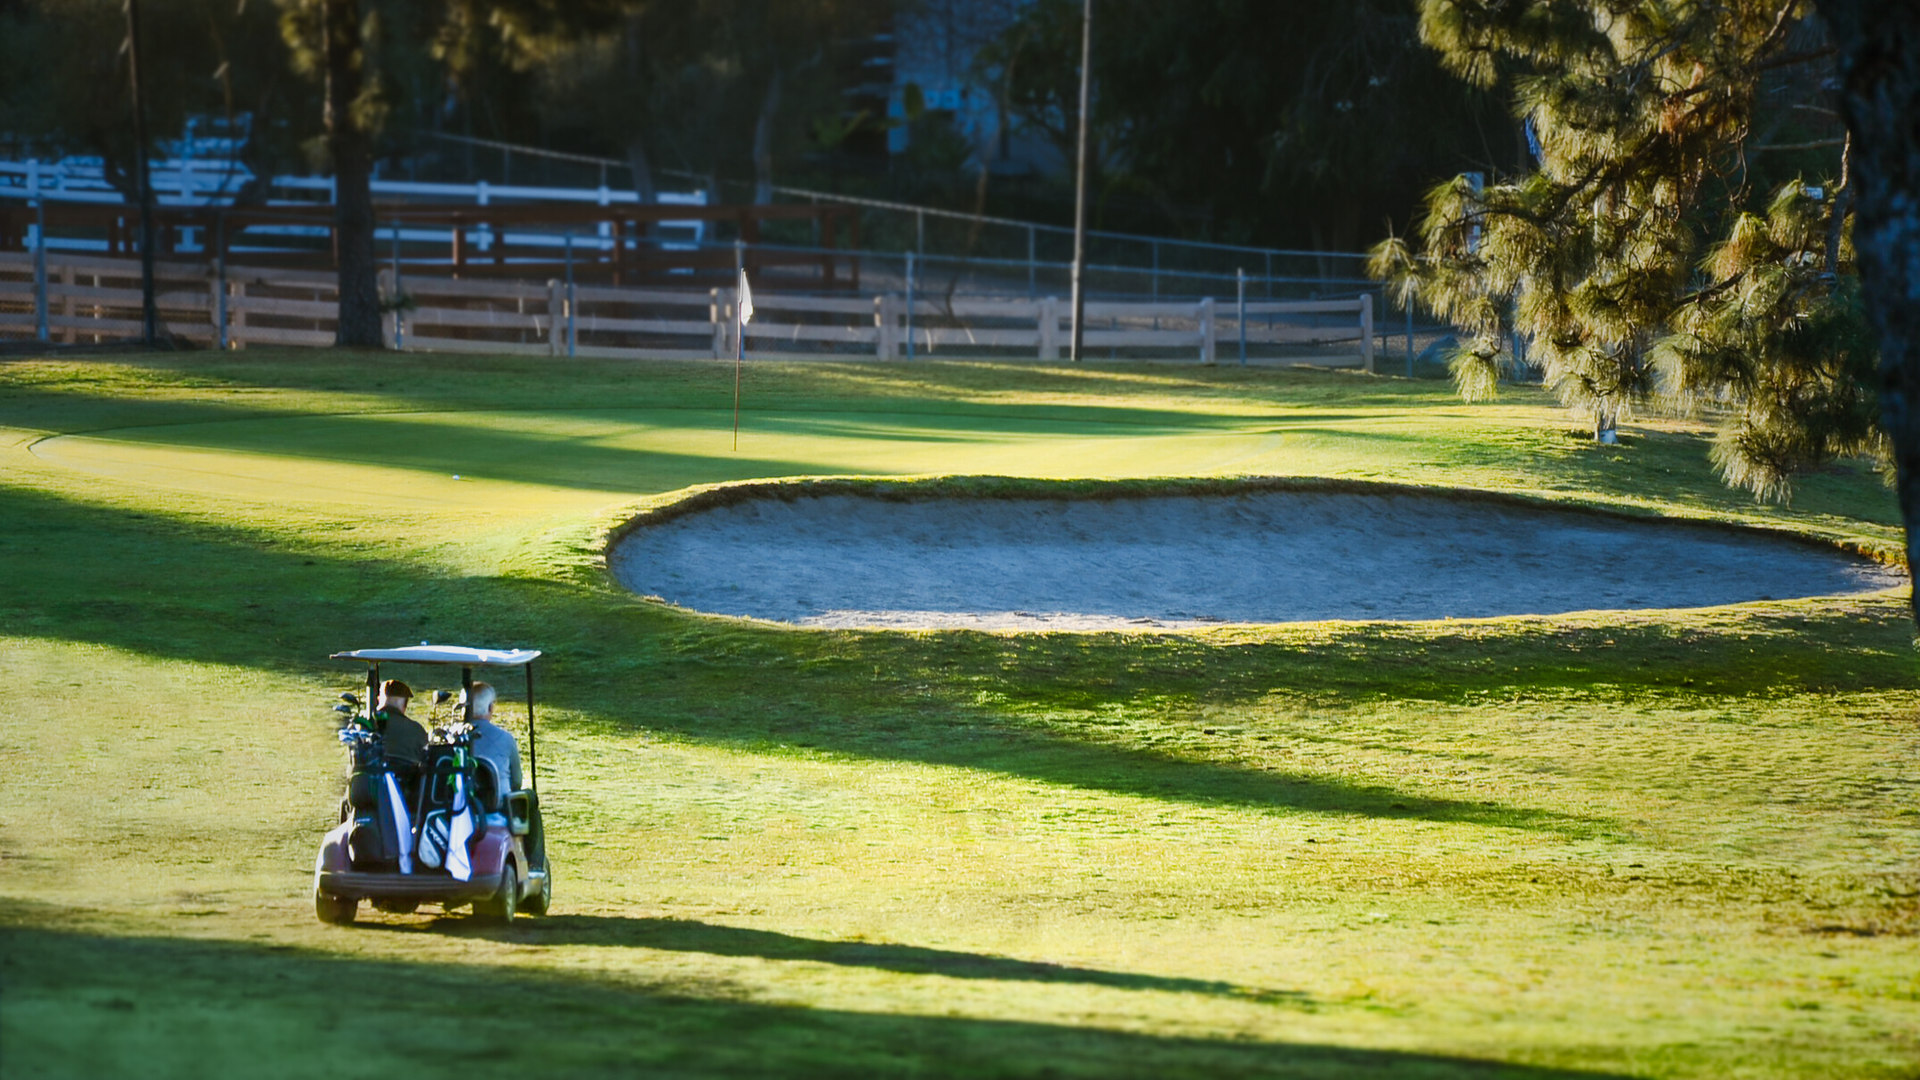 golf-instruction-adults-kids-newport-beach-ca